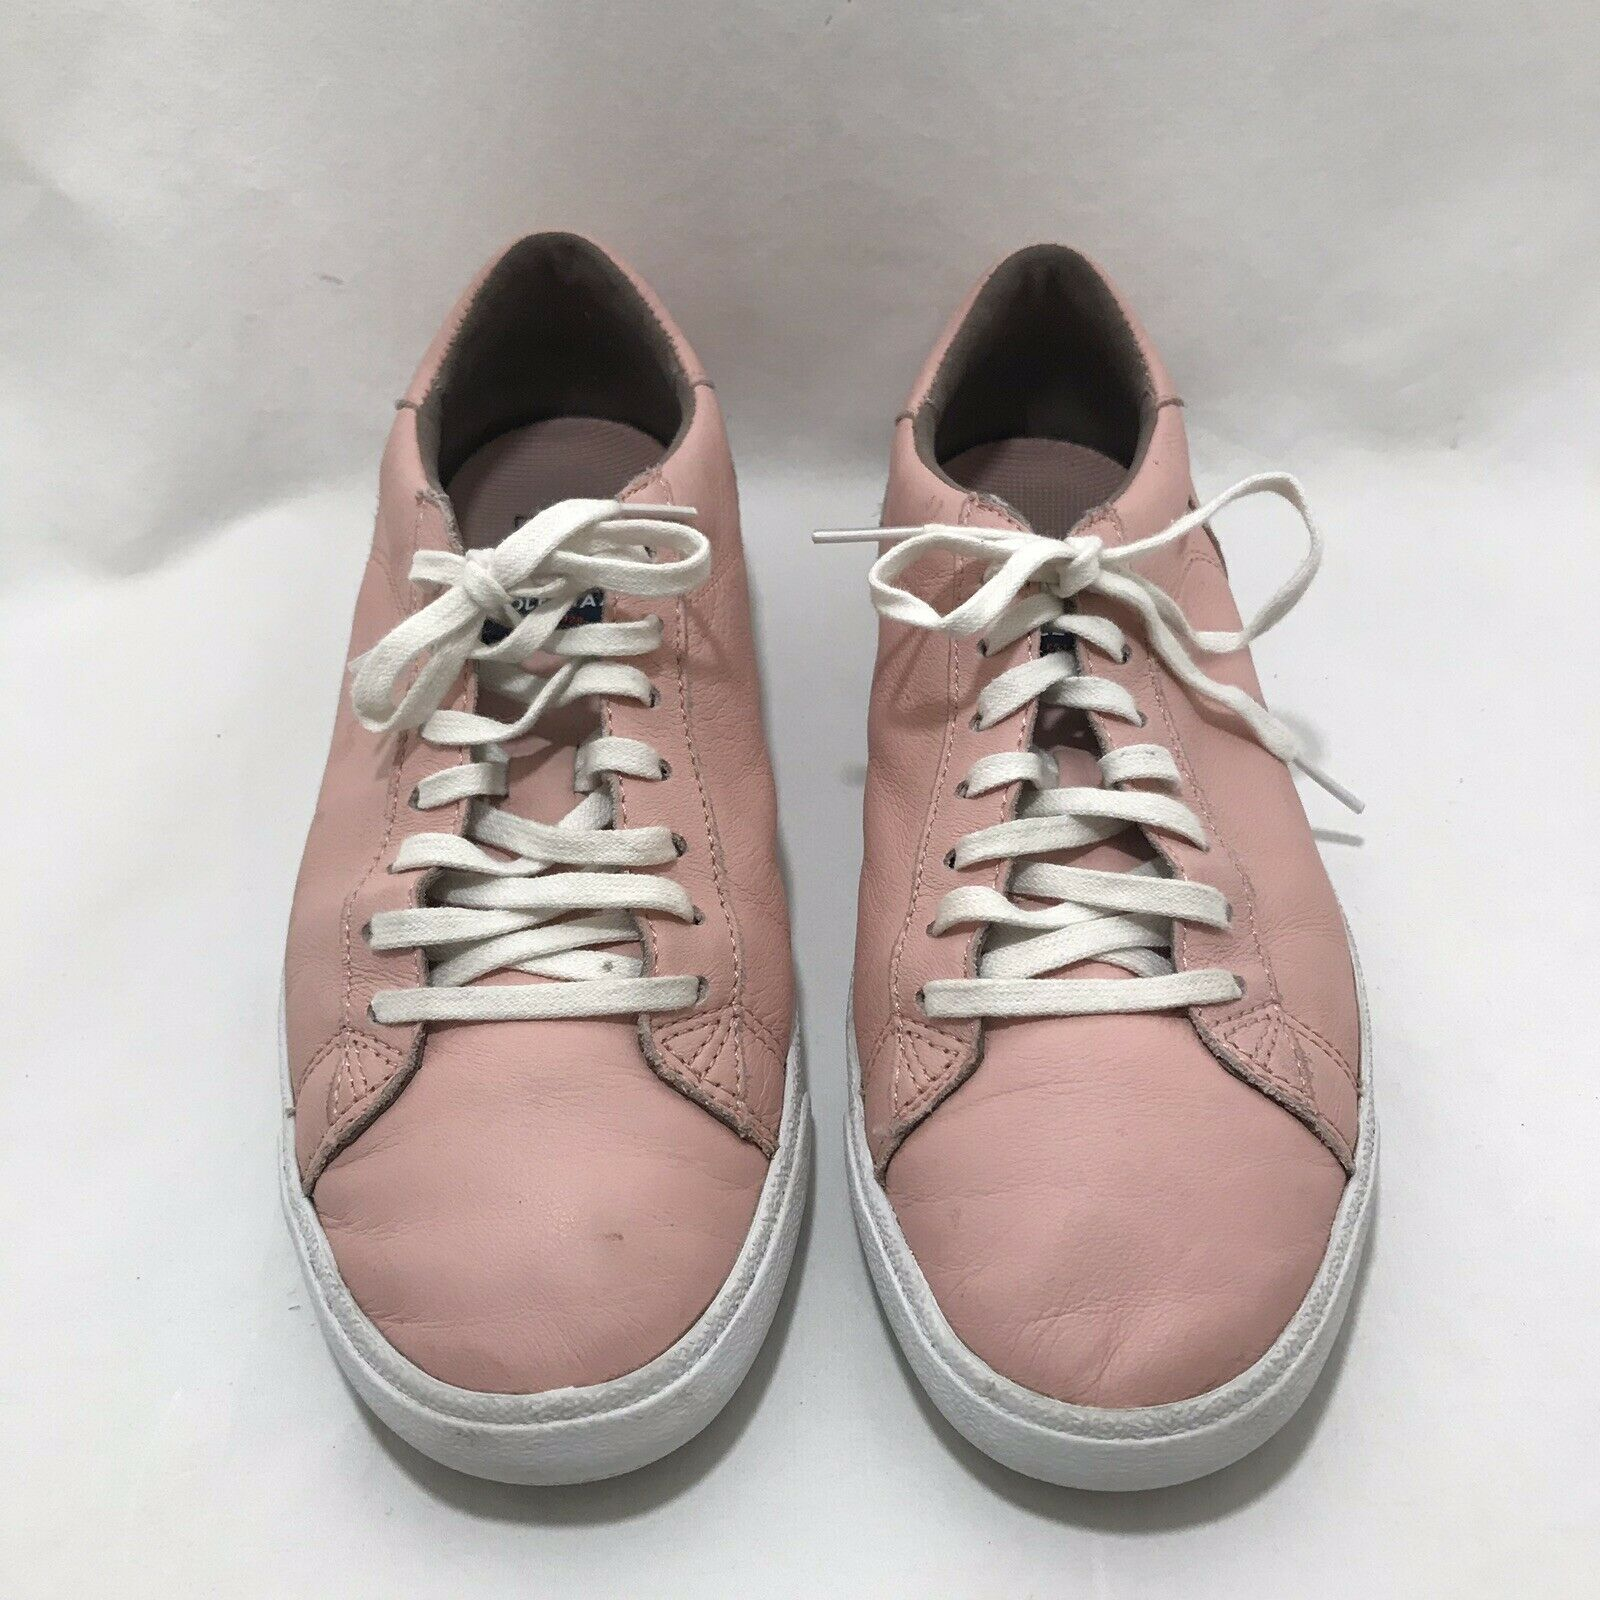 Cole Hann Pink Leather Tennis shoes Size 7B Lace Up